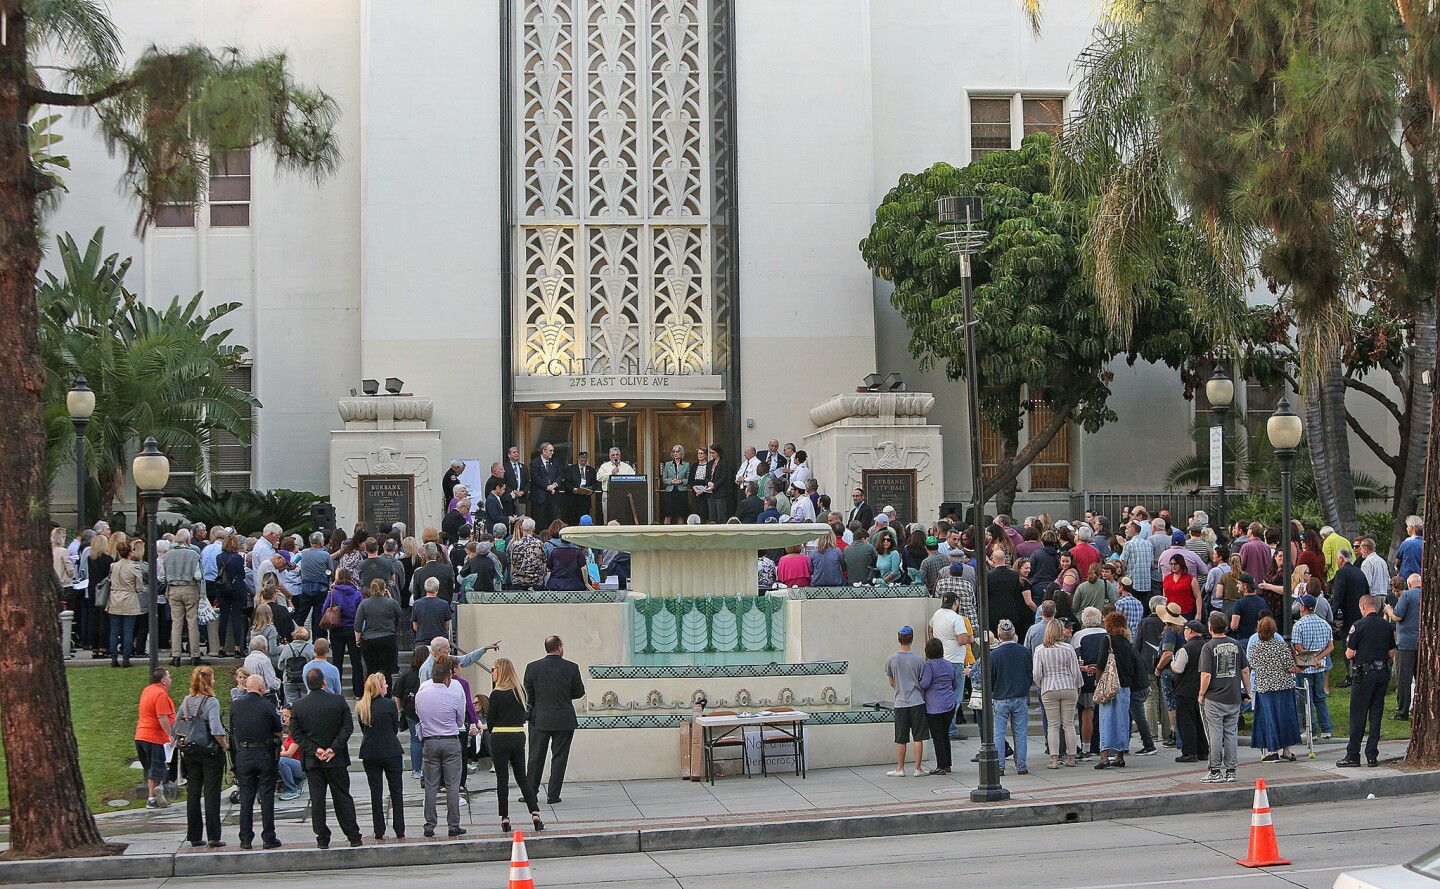 Photo Gallery: Vigil of Healing on Burbank City Hall steps for eleven killed in Pittsburgh Synagogue